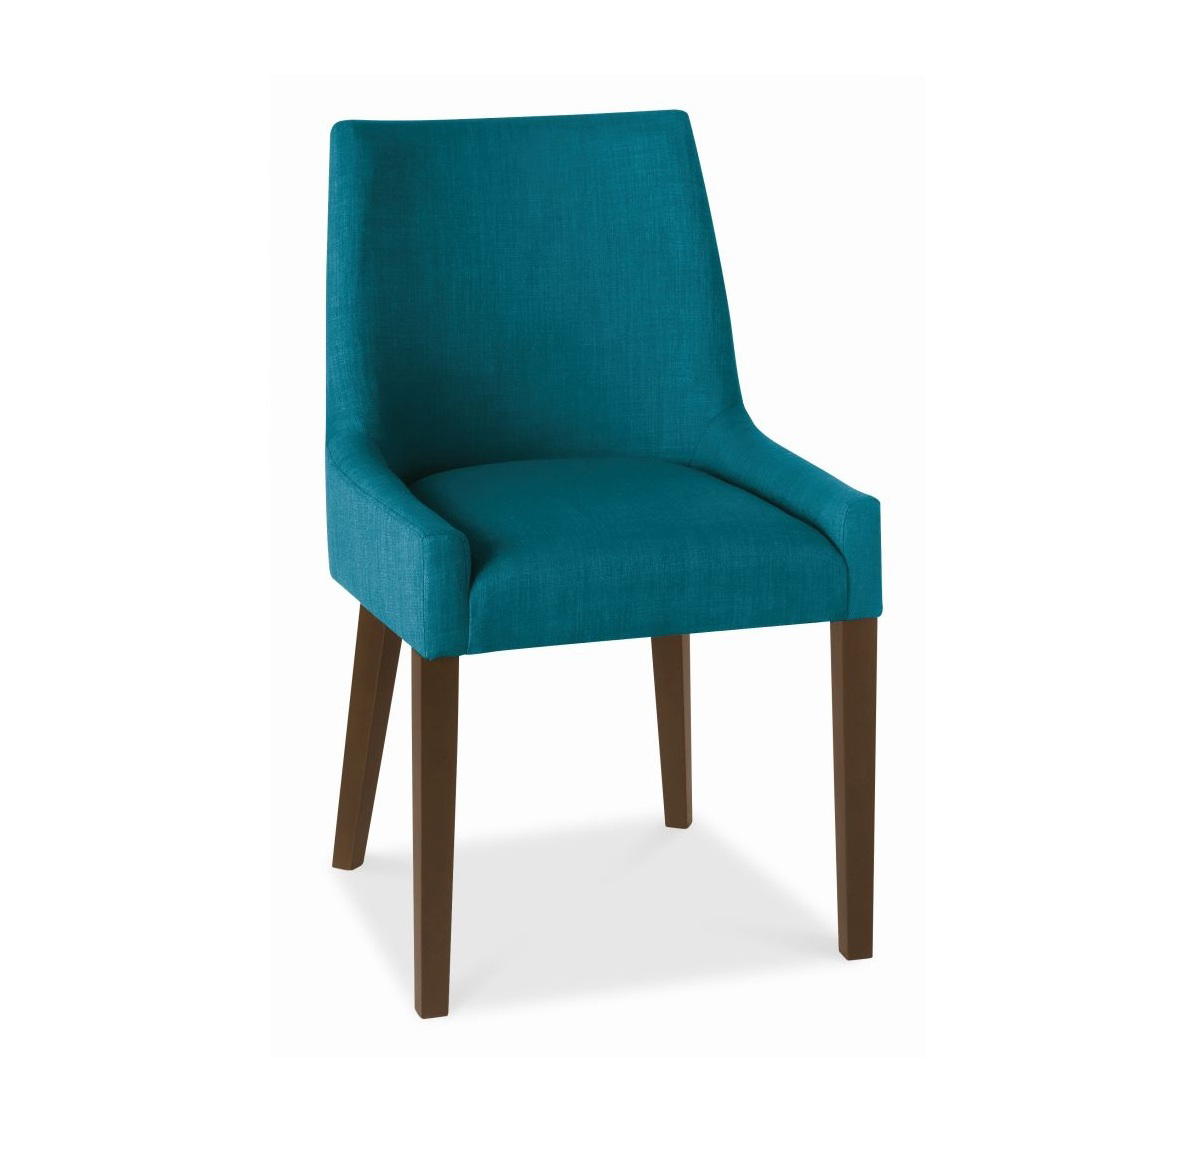 ALEX TEAL UPHOLSTERED DINING CHAIR WITH WALNUT LEGS -0